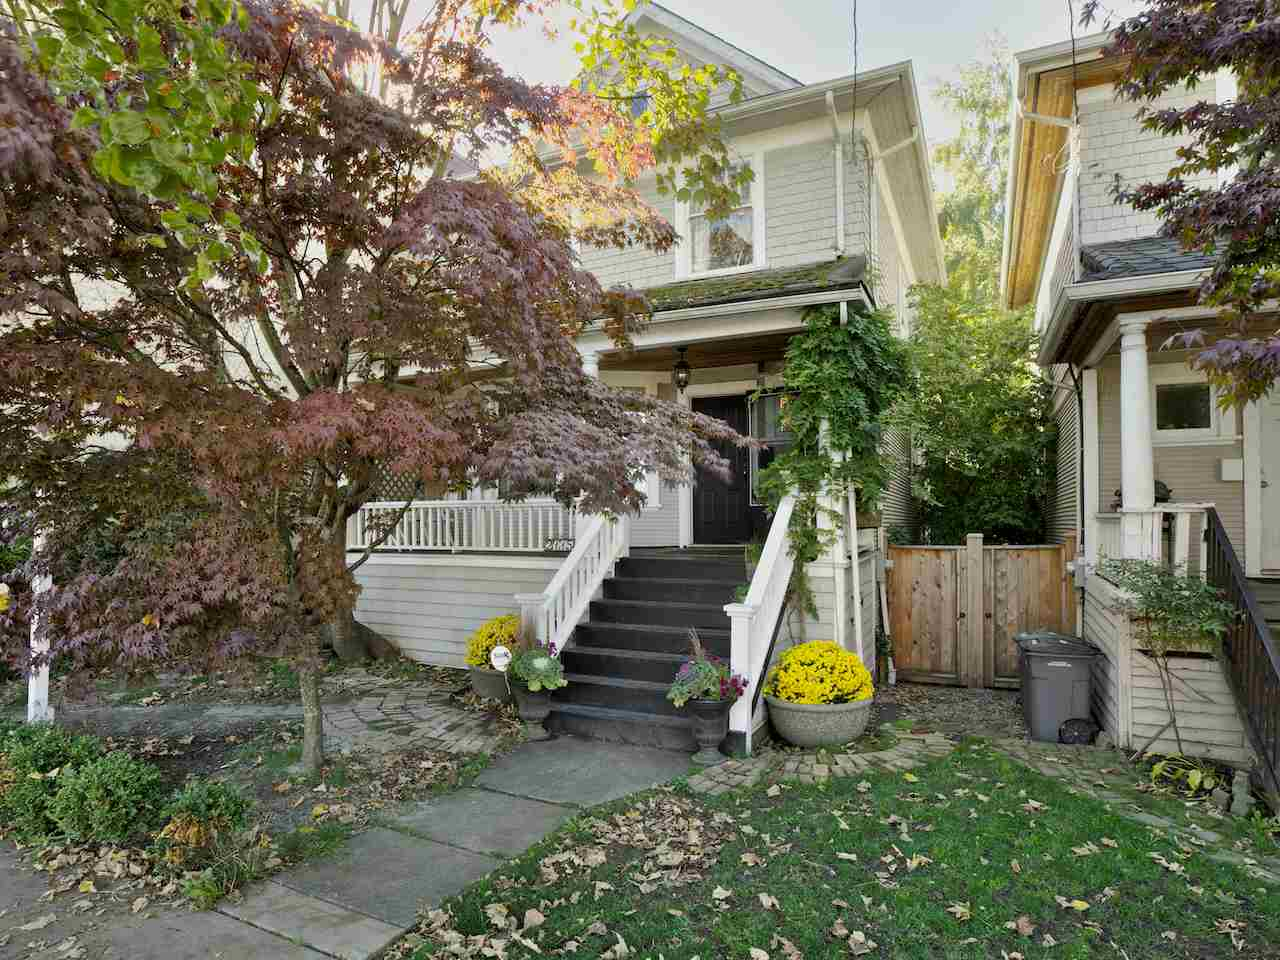 Main Photo: 2115 COLUMBIA Street in Vancouver: False Creek House for sale (Vancouver West)  : MLS® # R2003953